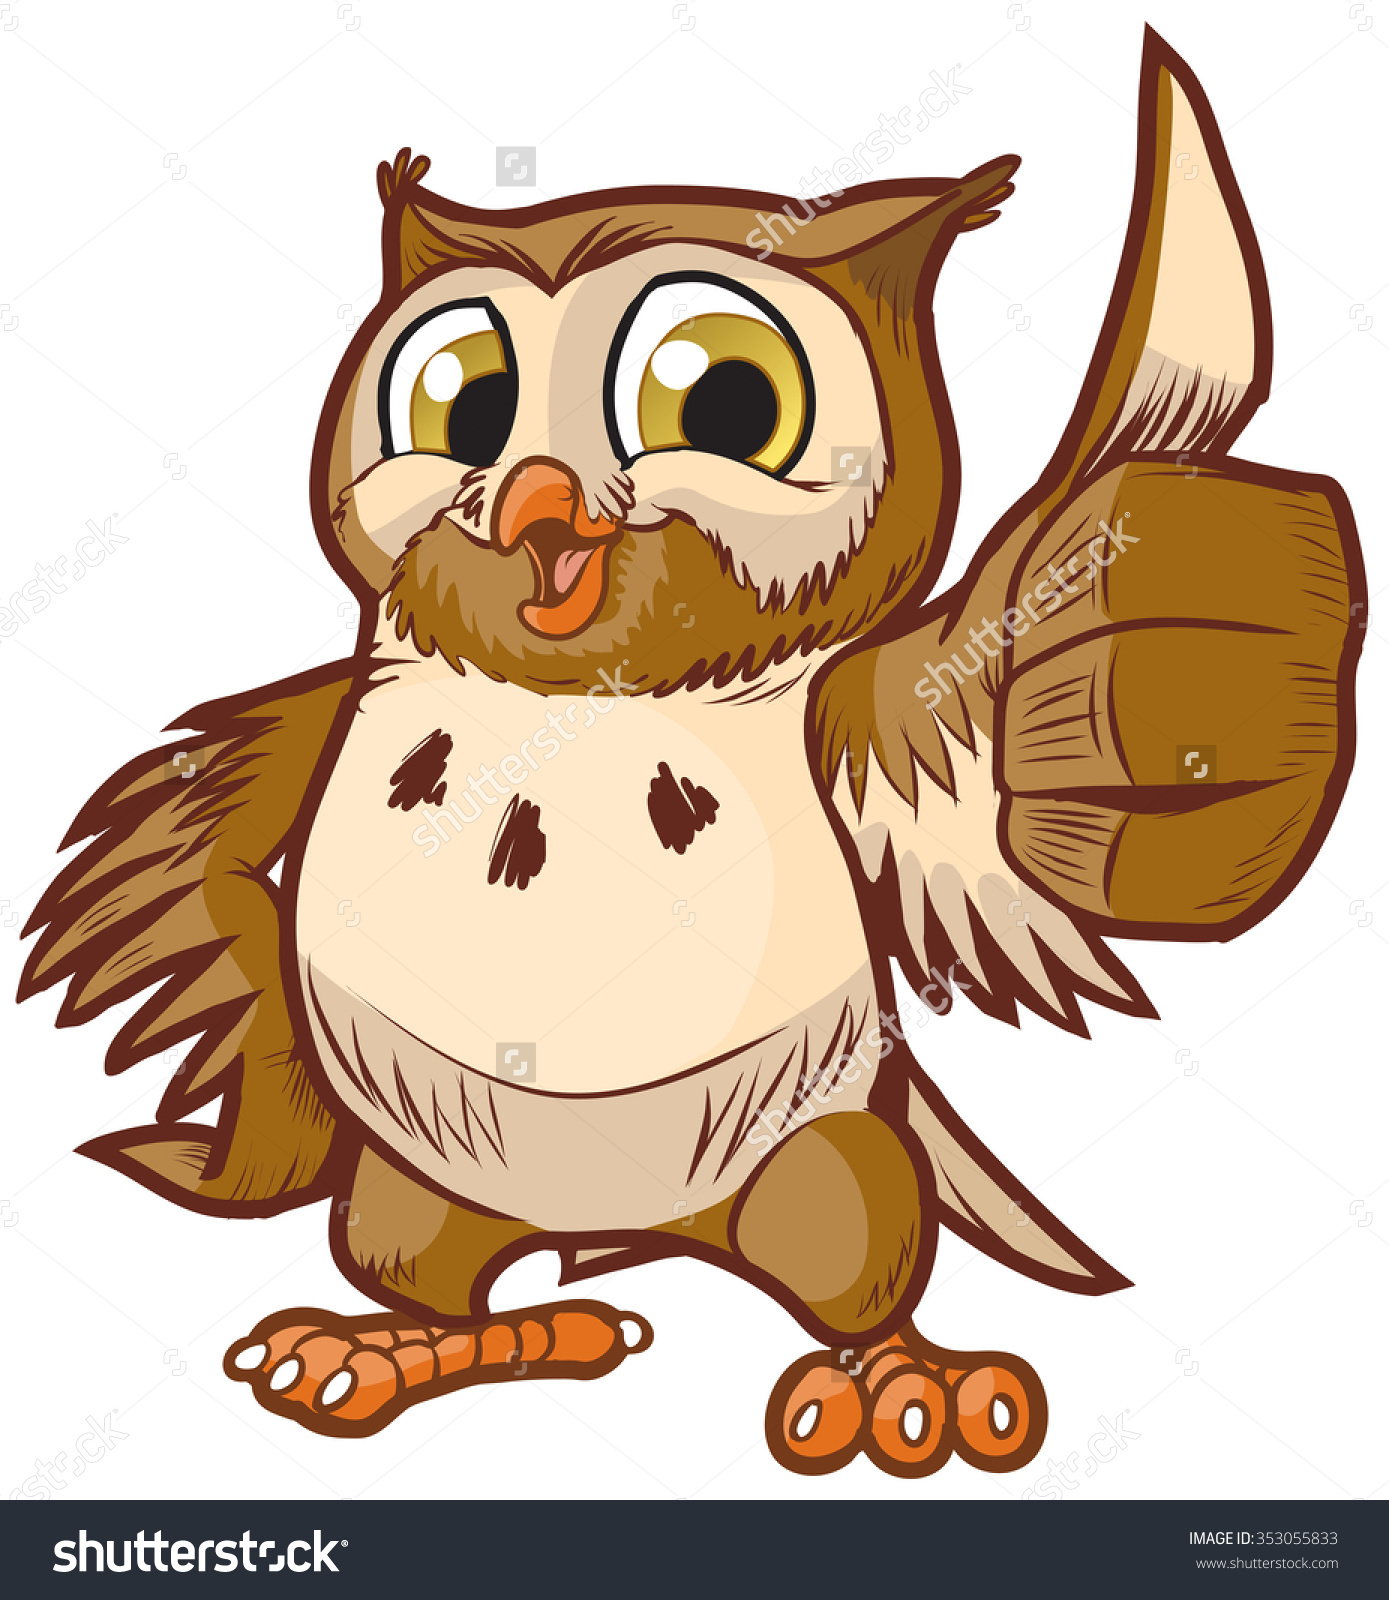 Barred Owl clipart happy Clip Owl art BBCpersian7 collections